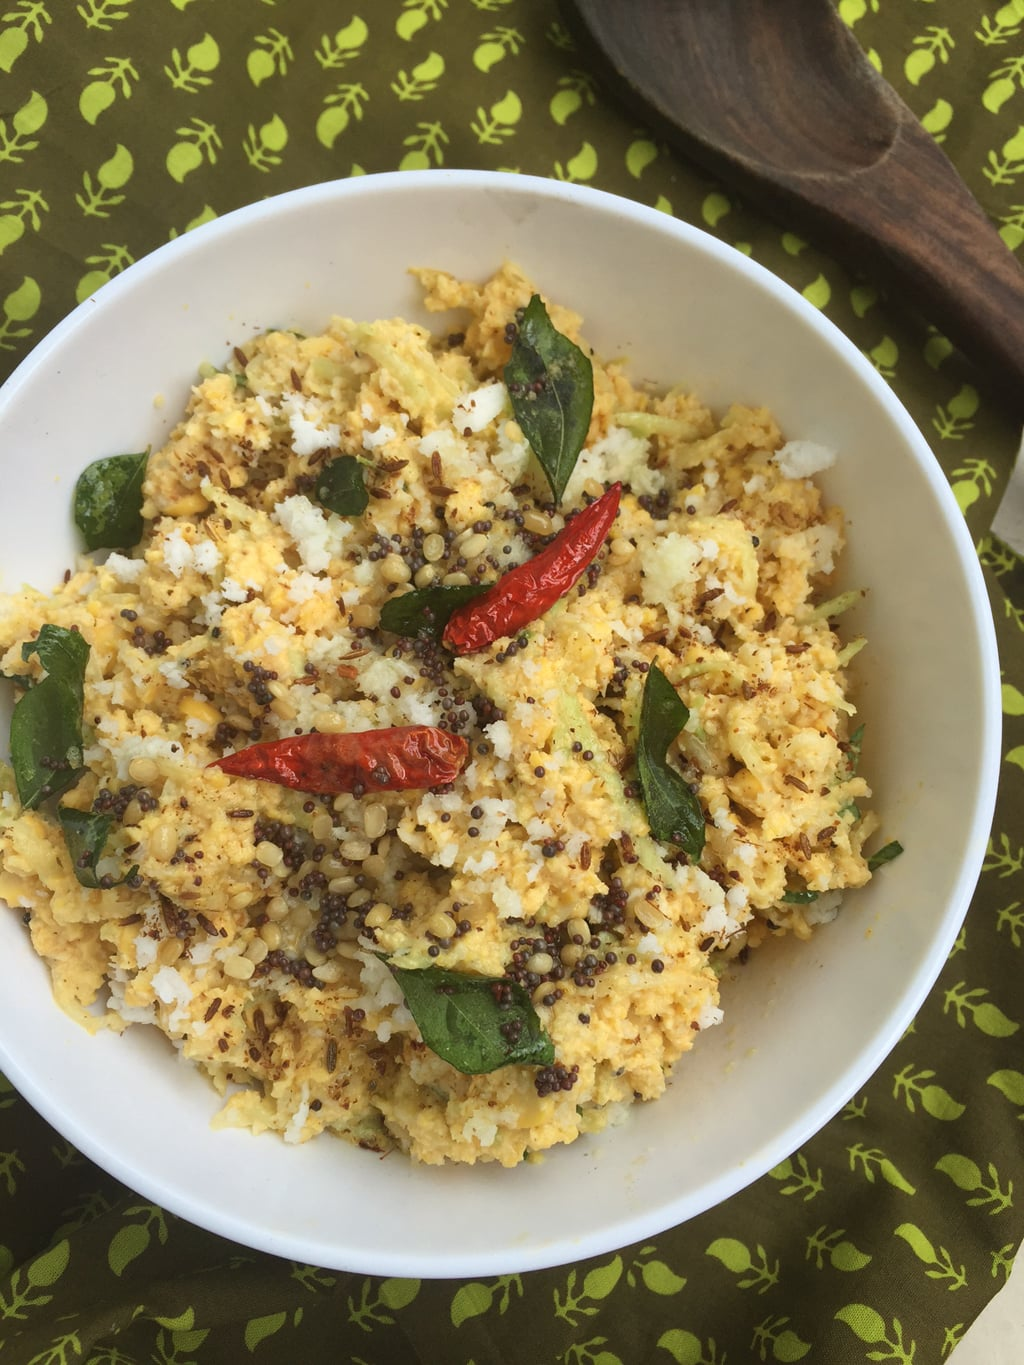 Raw mango and chana dal salad indian style recipe saffron trail print recipe forumfinder Image collections